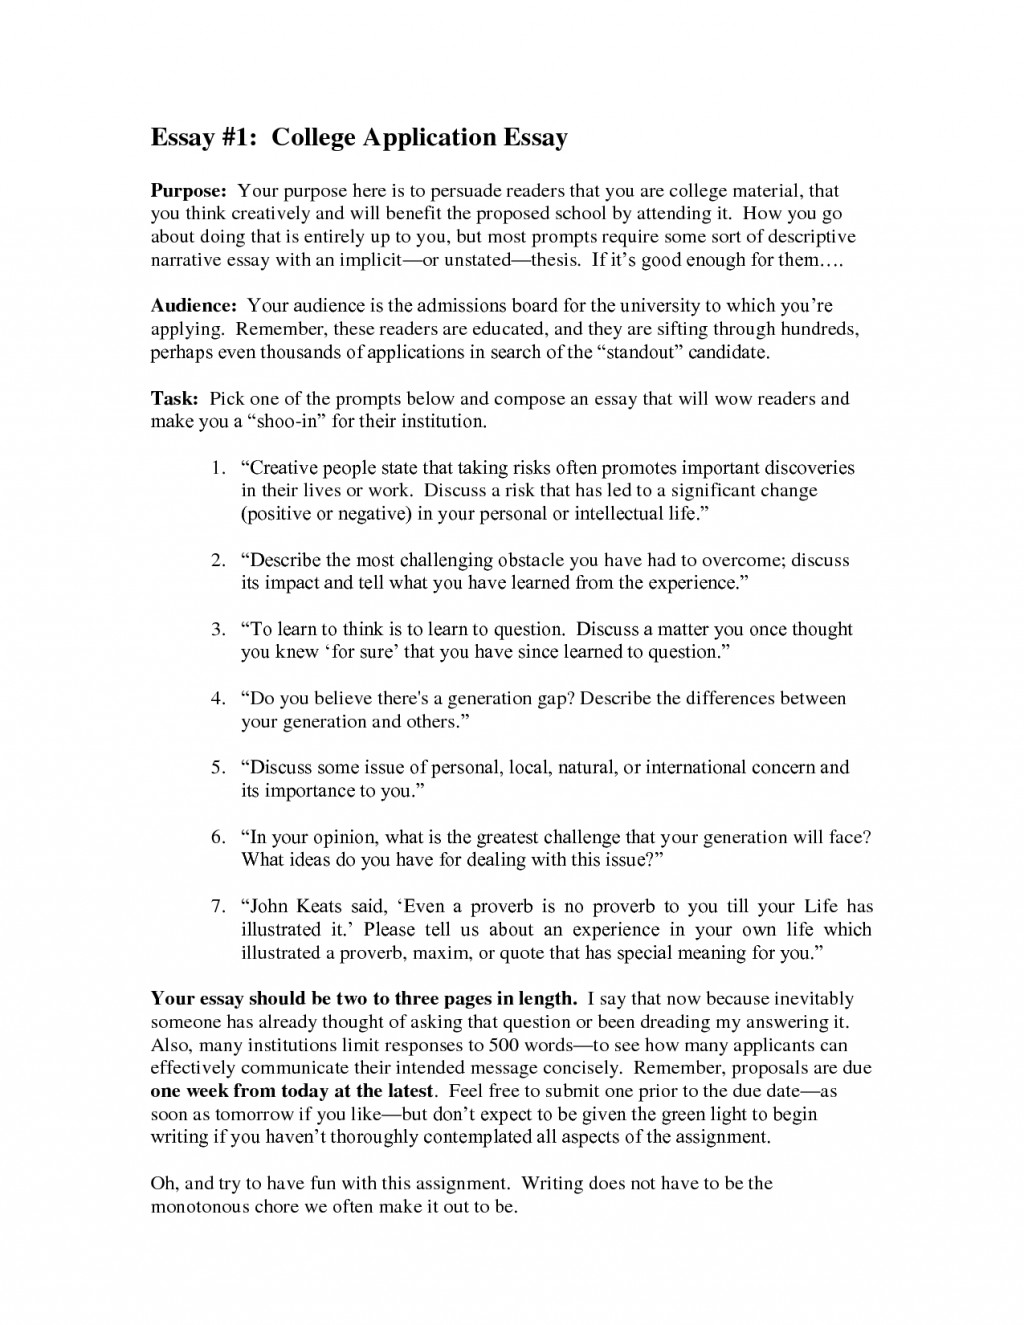 016 Satirical Essays College Application Imposing Essay Examples Satire On Love Gun Control Bullying Large